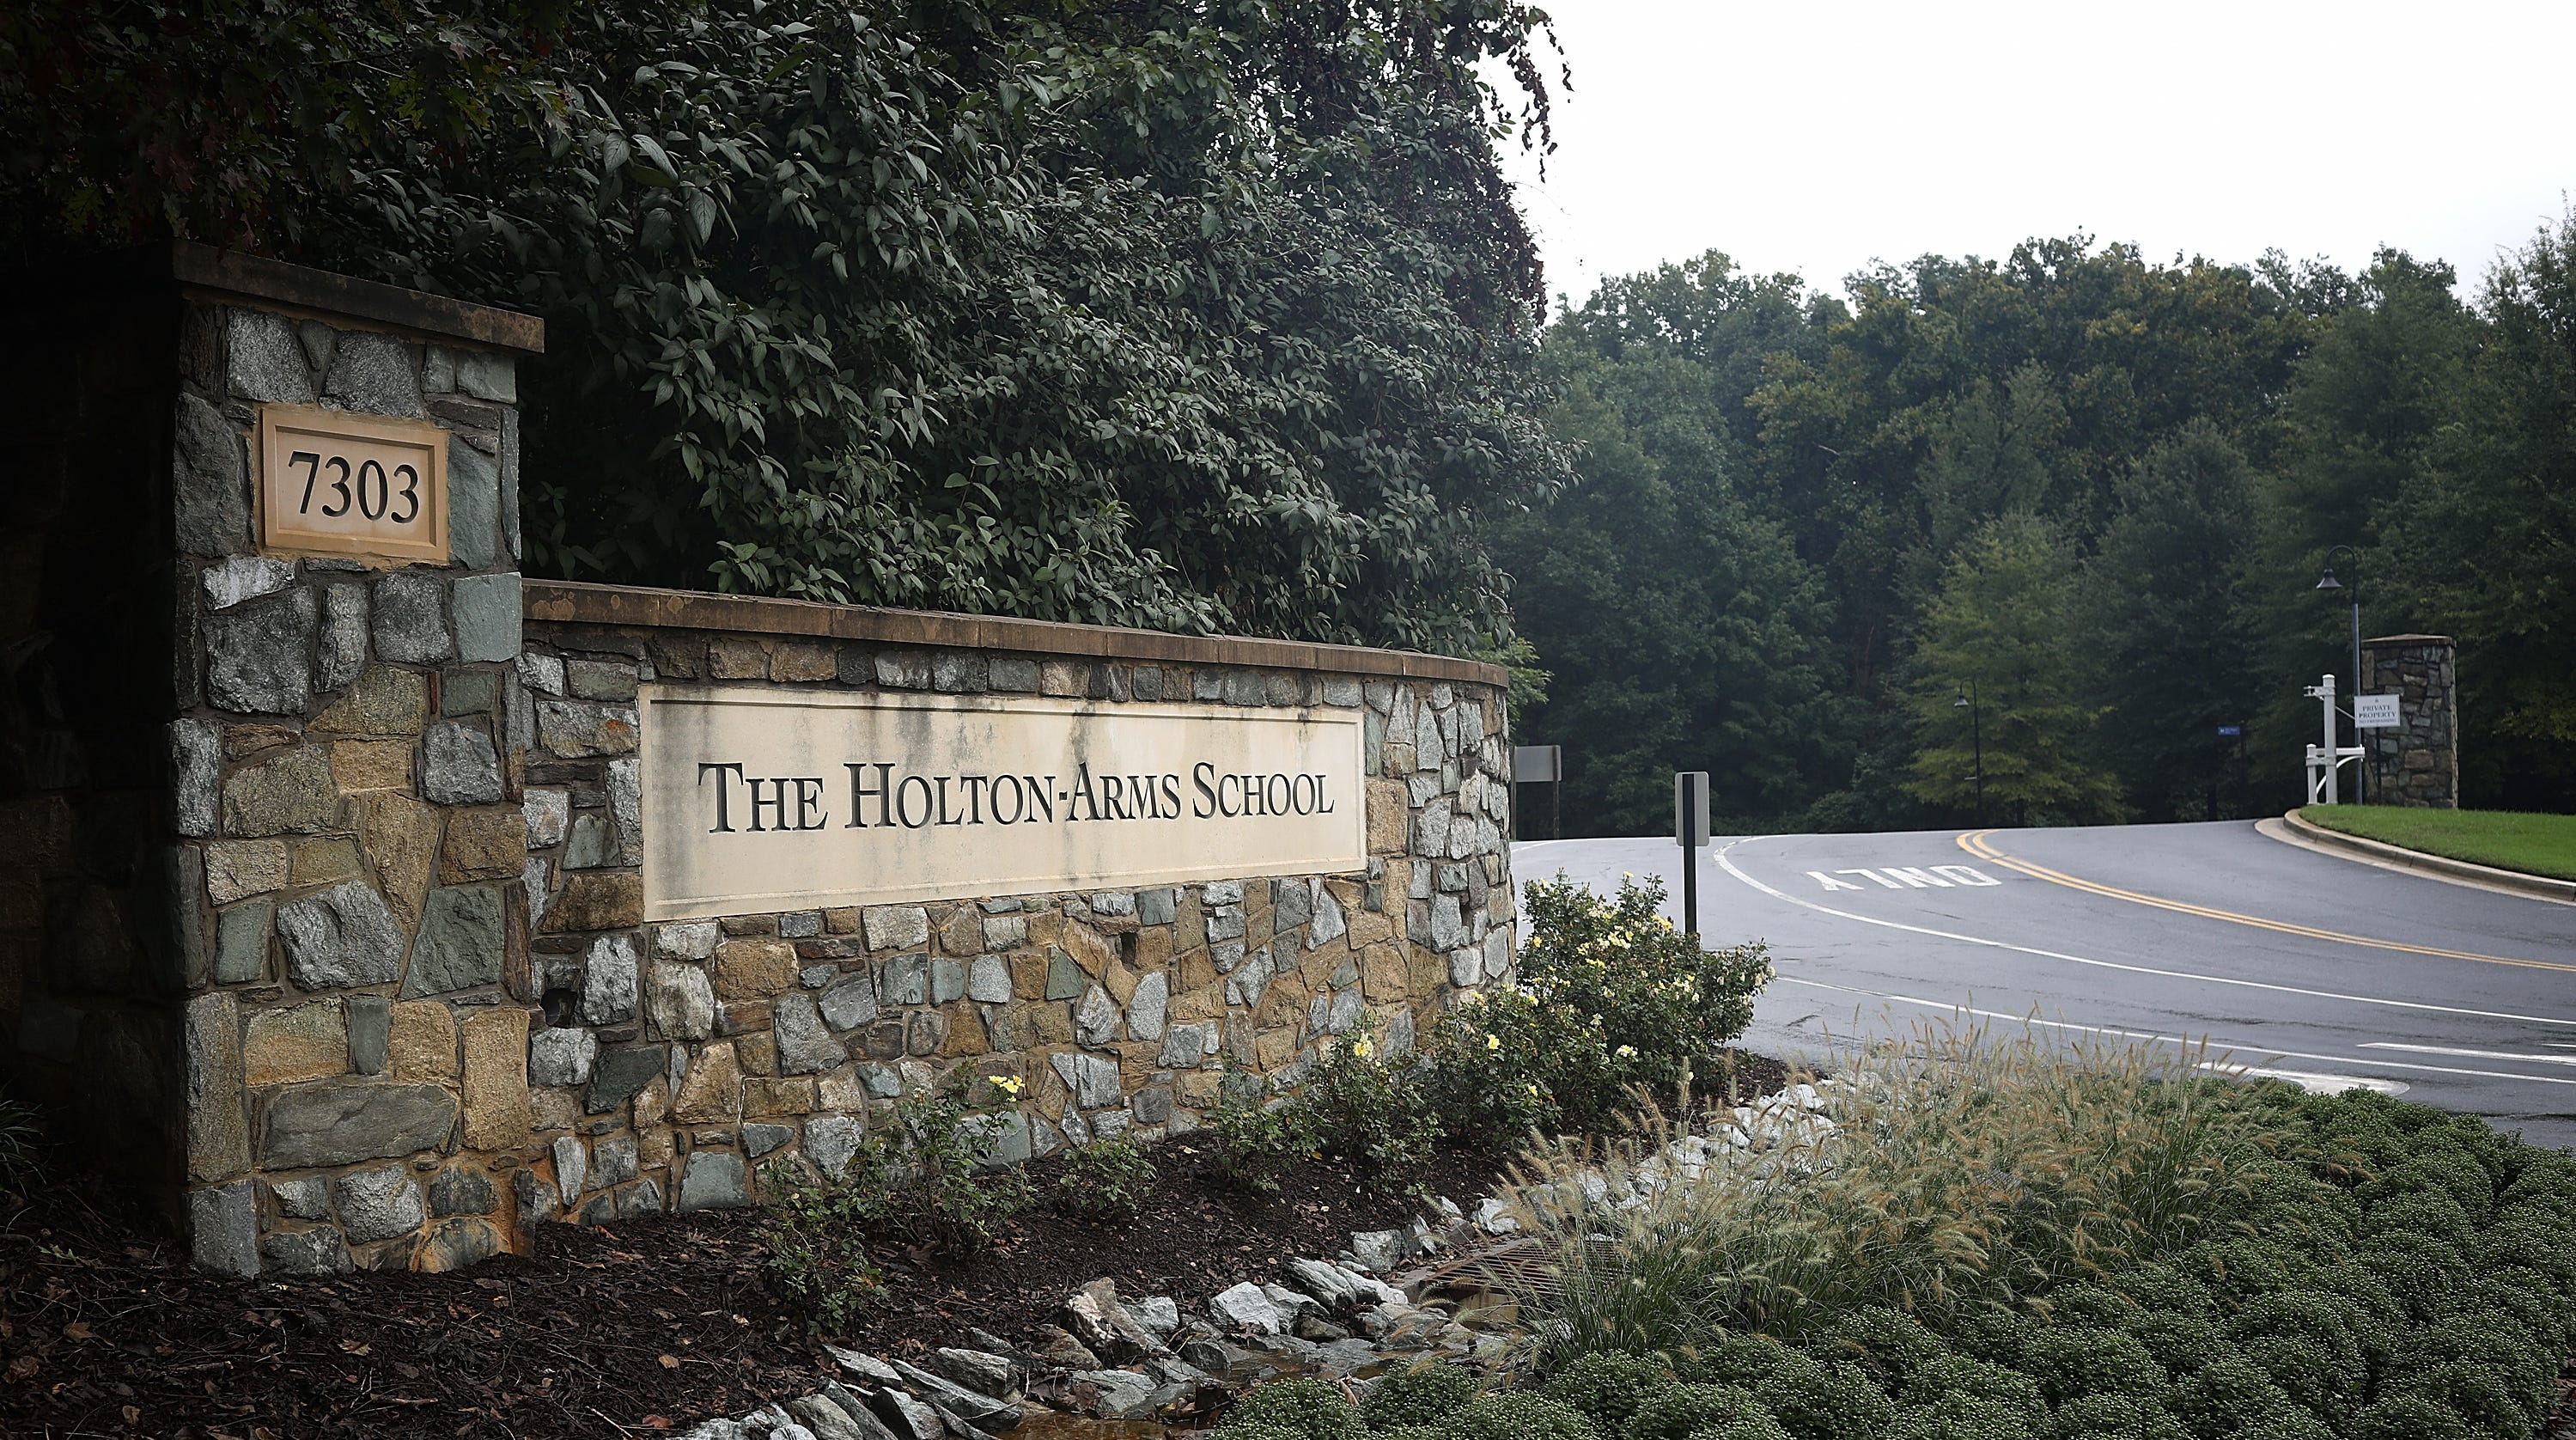 The entrance to the Holton-Arms School in Bethesda, Maryland.